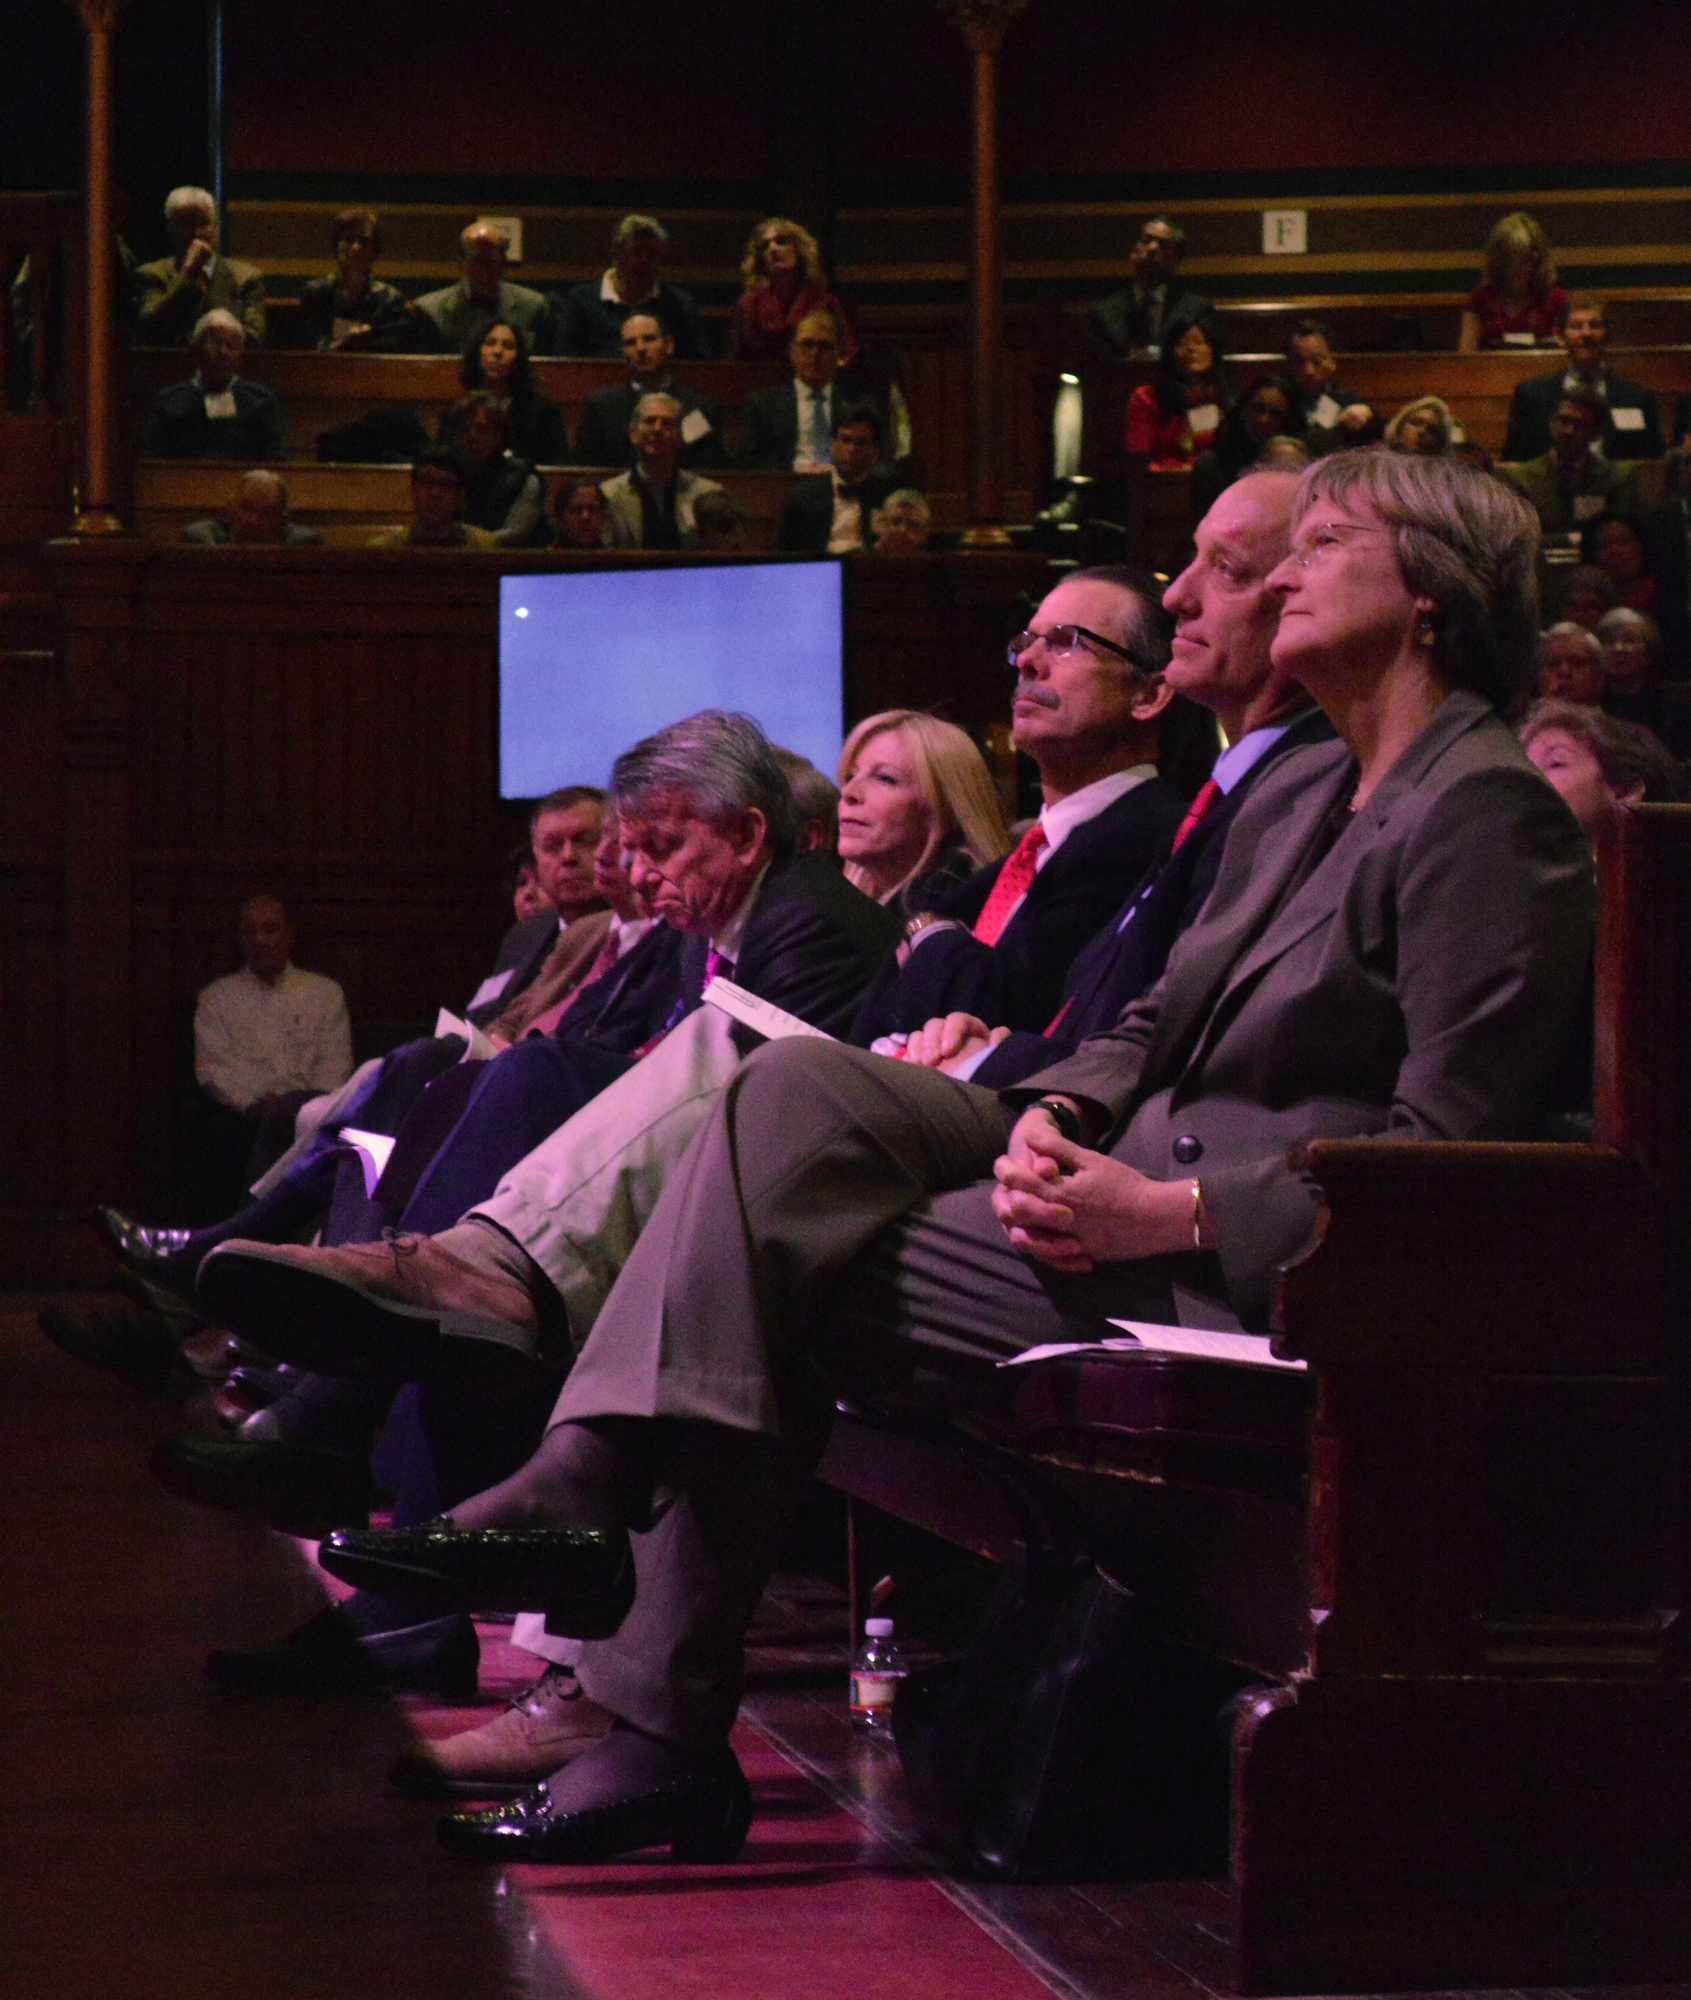 From right to left, University Drew G. Faust, FAS Dean Michael D. Smith, and campaign co-chairs Glenn H. Hutchins '77, Paul B. Edgerley, and Sandra M. Edgerley '84 watch FAS campaign co-chair Carl J. Martignetti '81 address the crowd at the FAS campaign launch event in Sanders Theatre Saturday morning.